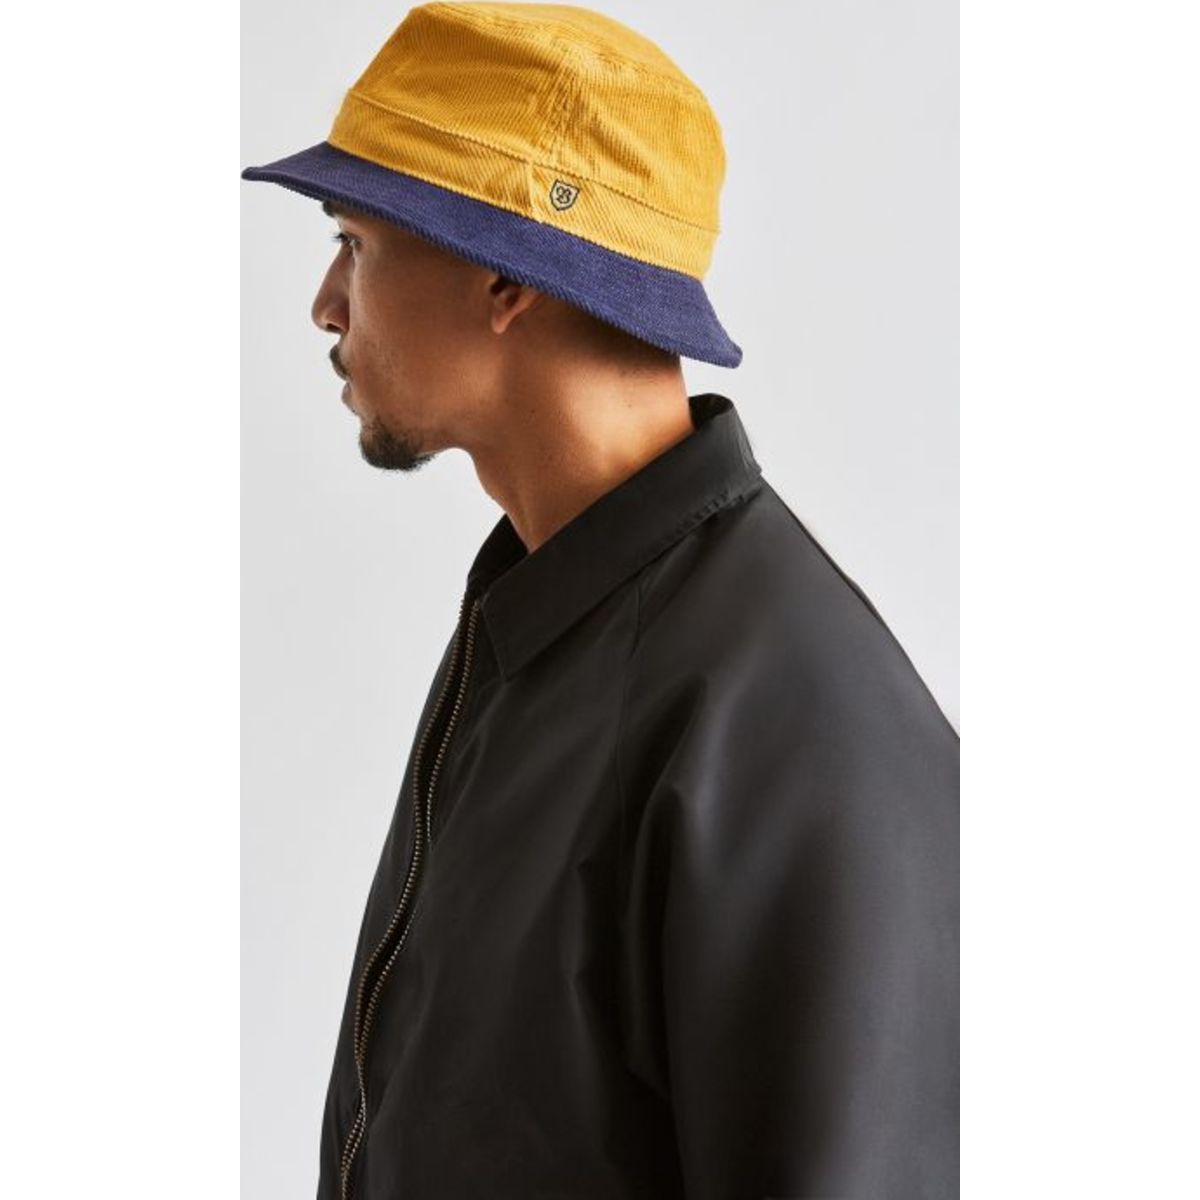 BRIXTON B-SHIELD BUCKET HAT - SUNSET YELLOW/WASHED NAVY